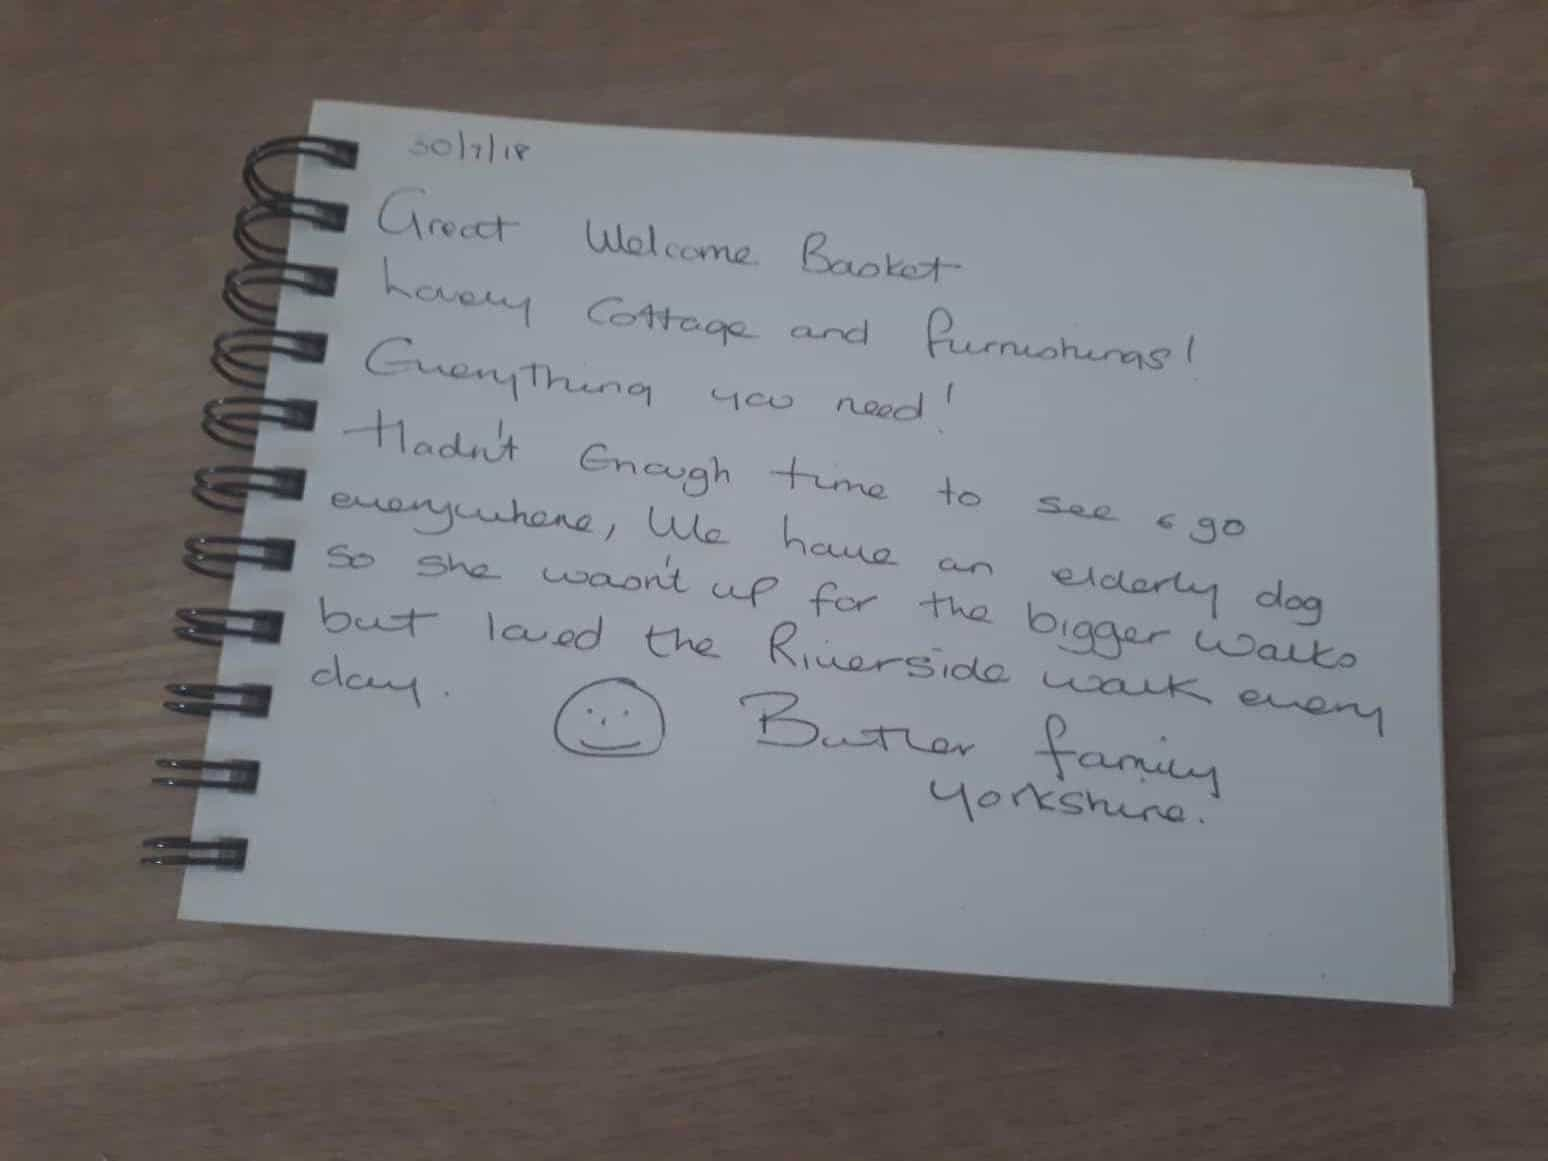 karens kottages - northumberland - drakestone cottage - stanegate cottage - dog friendly - customer review